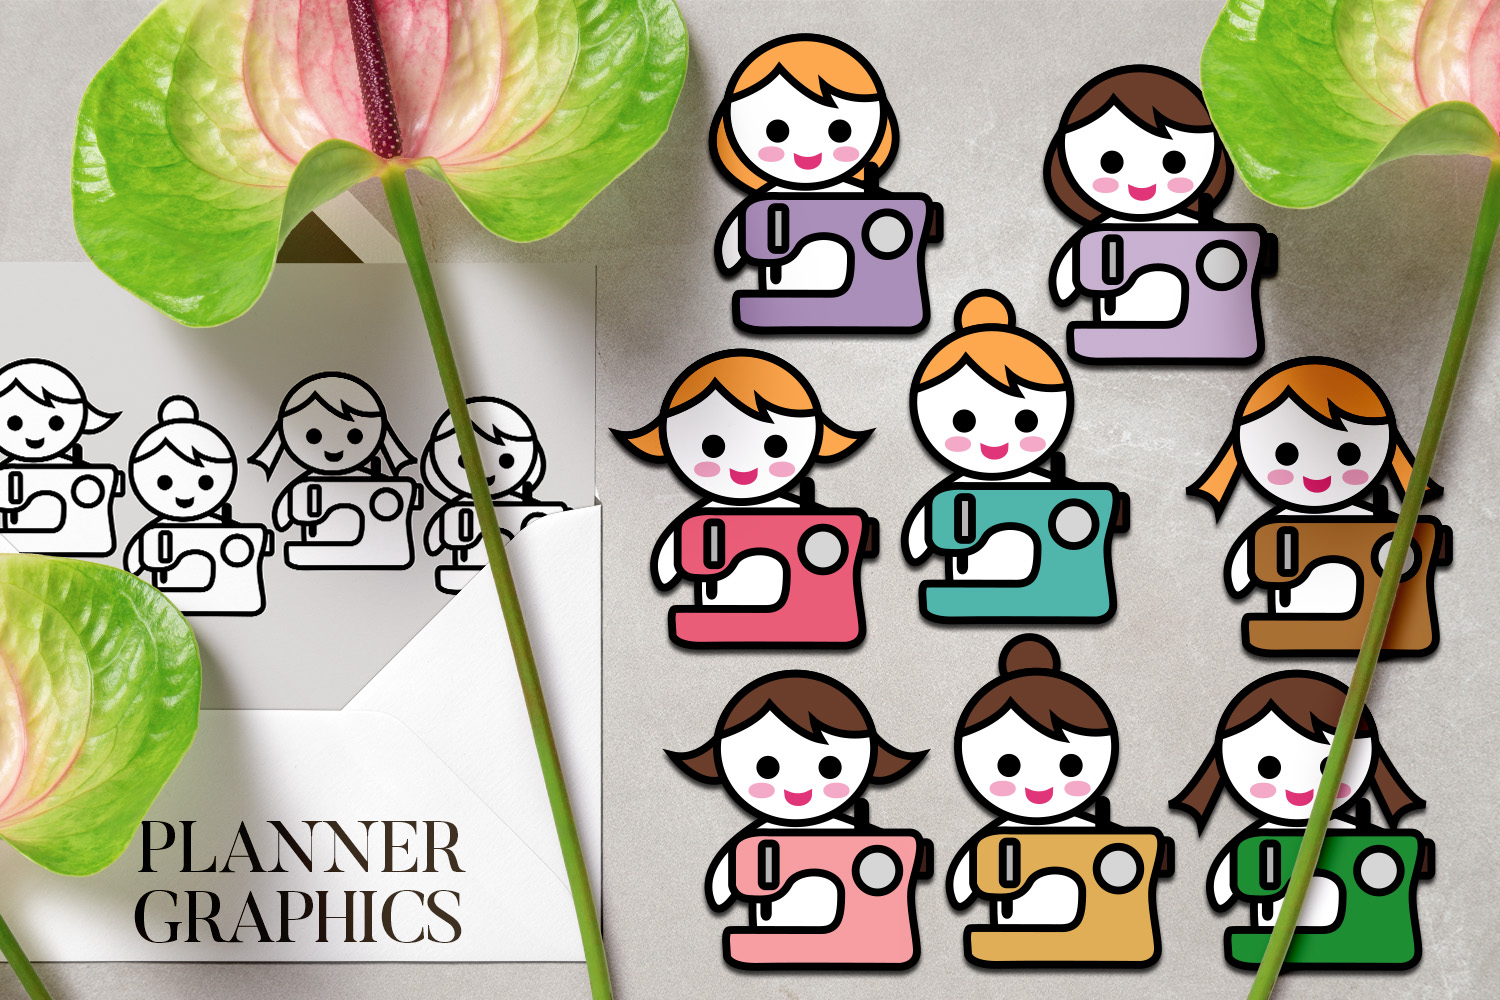 Hobby illustrations bundle - planner sticker graphics example image 5